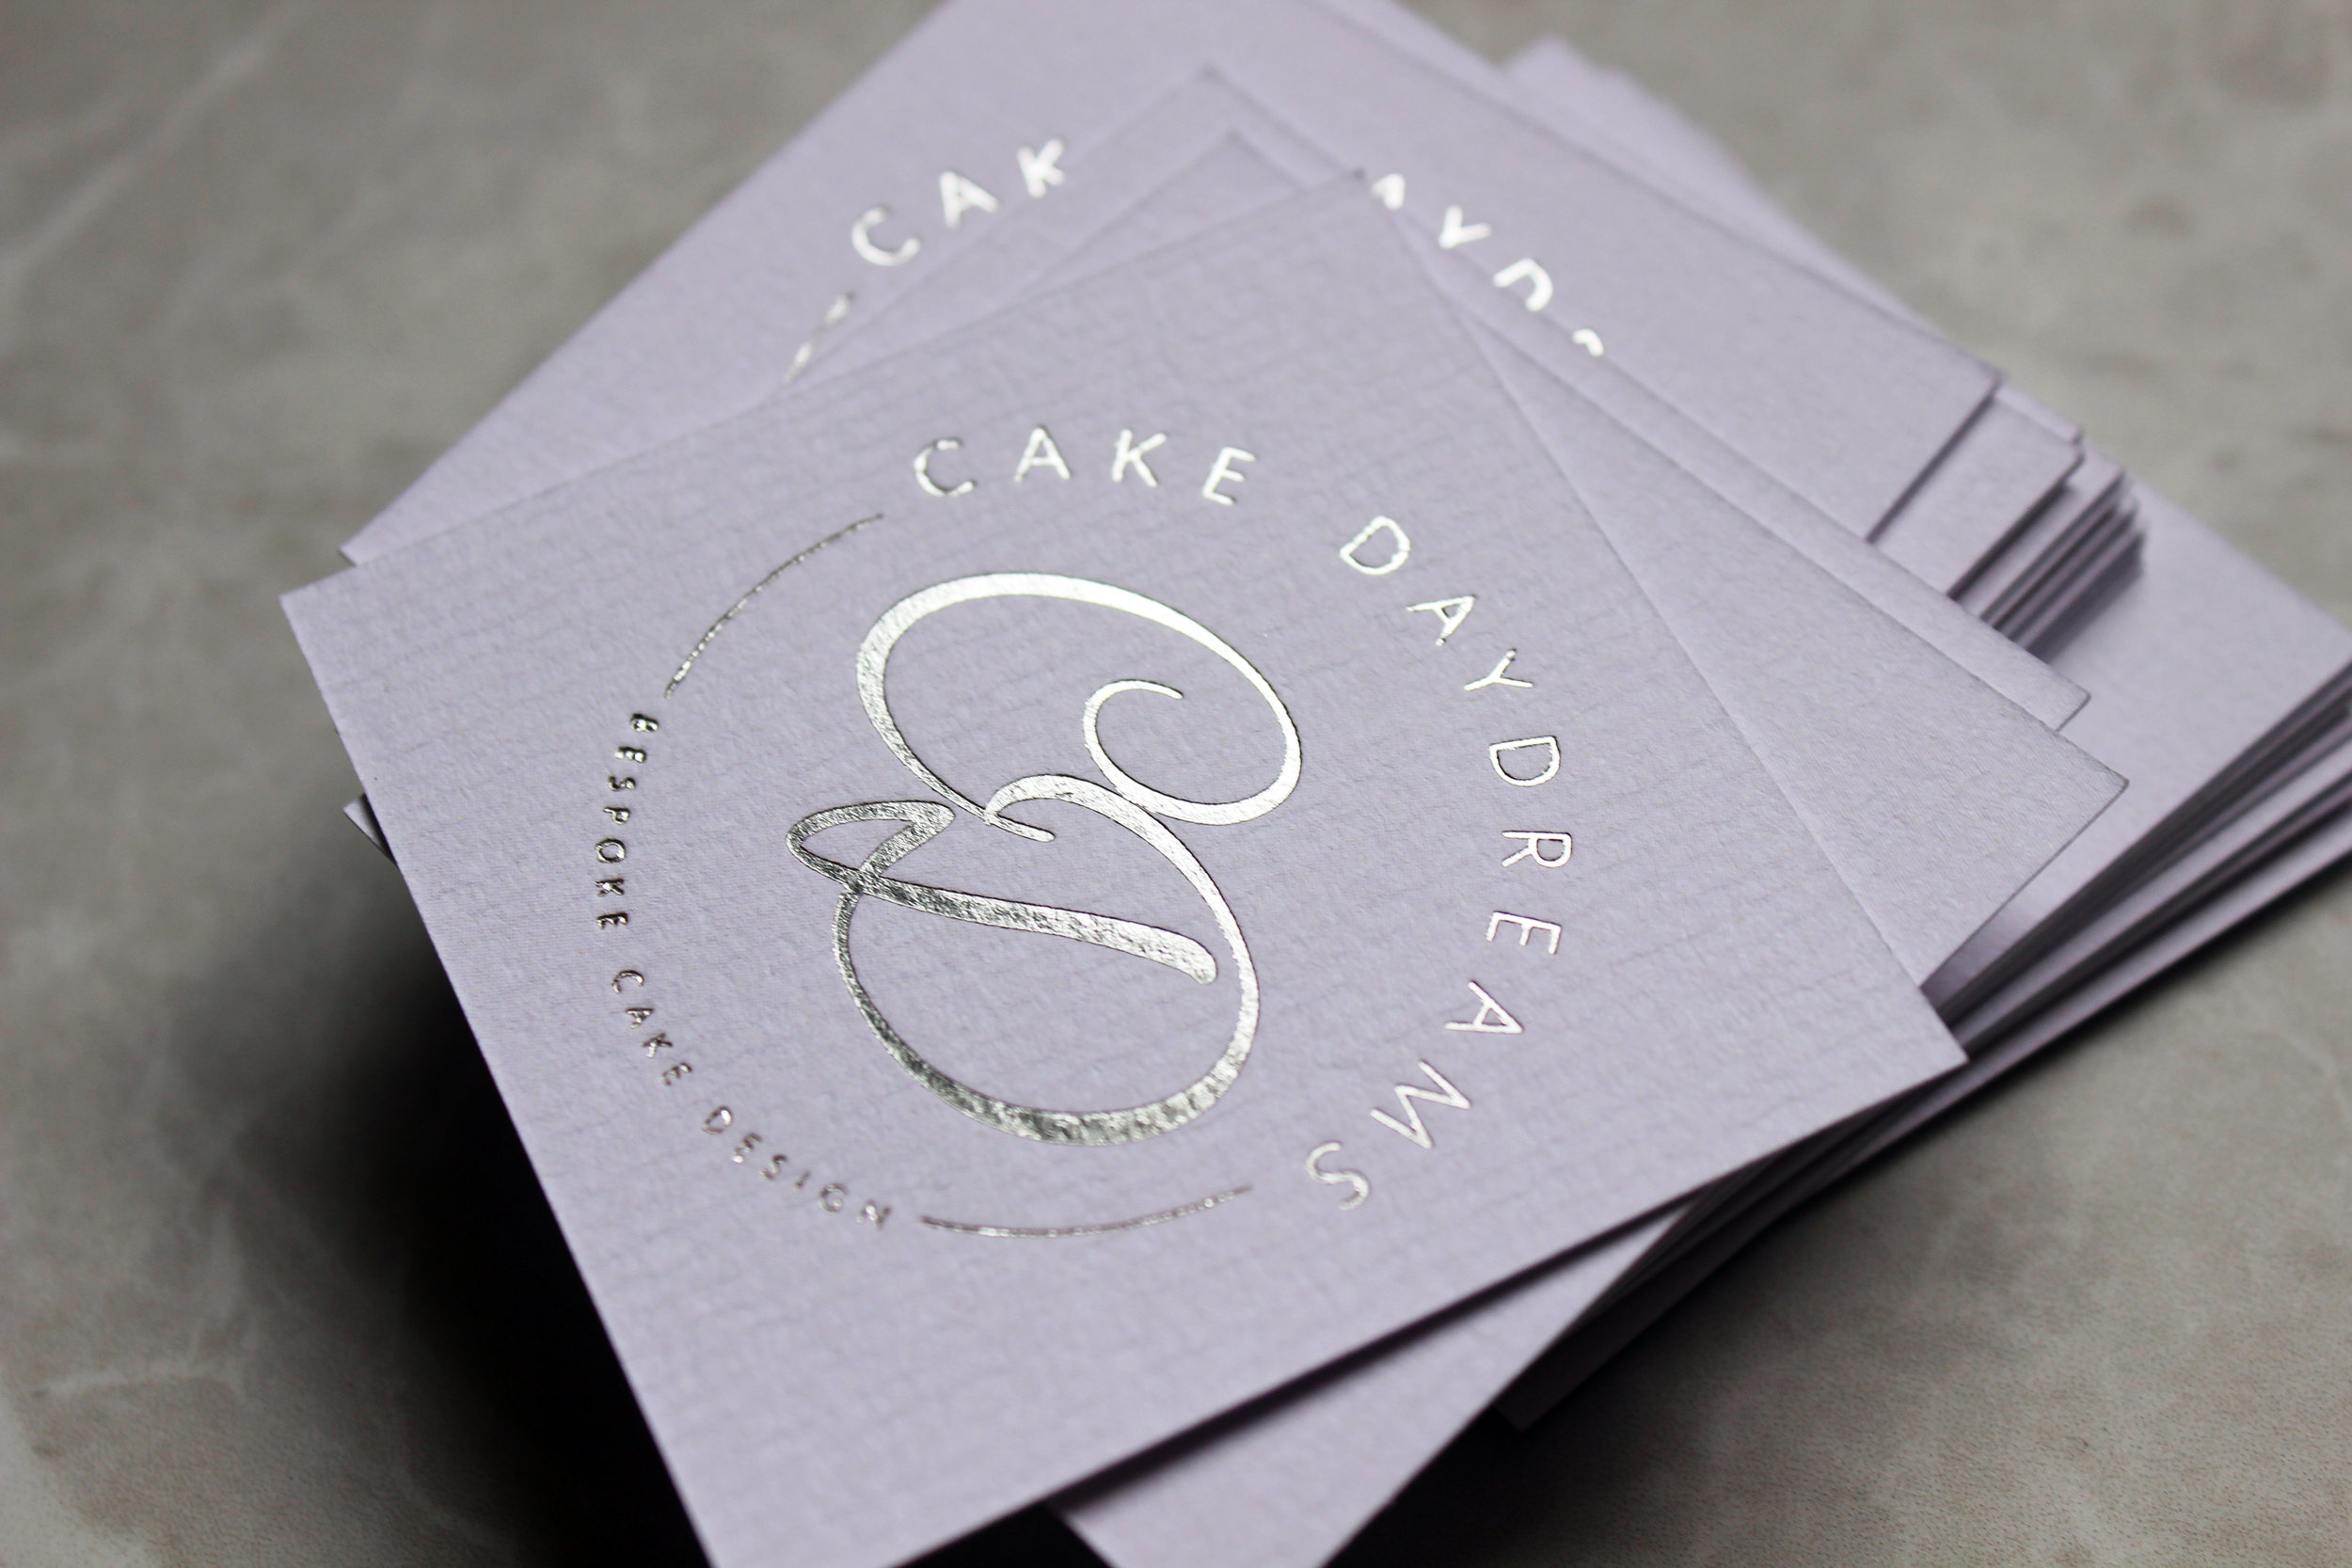 Cake Daydreams Stationery